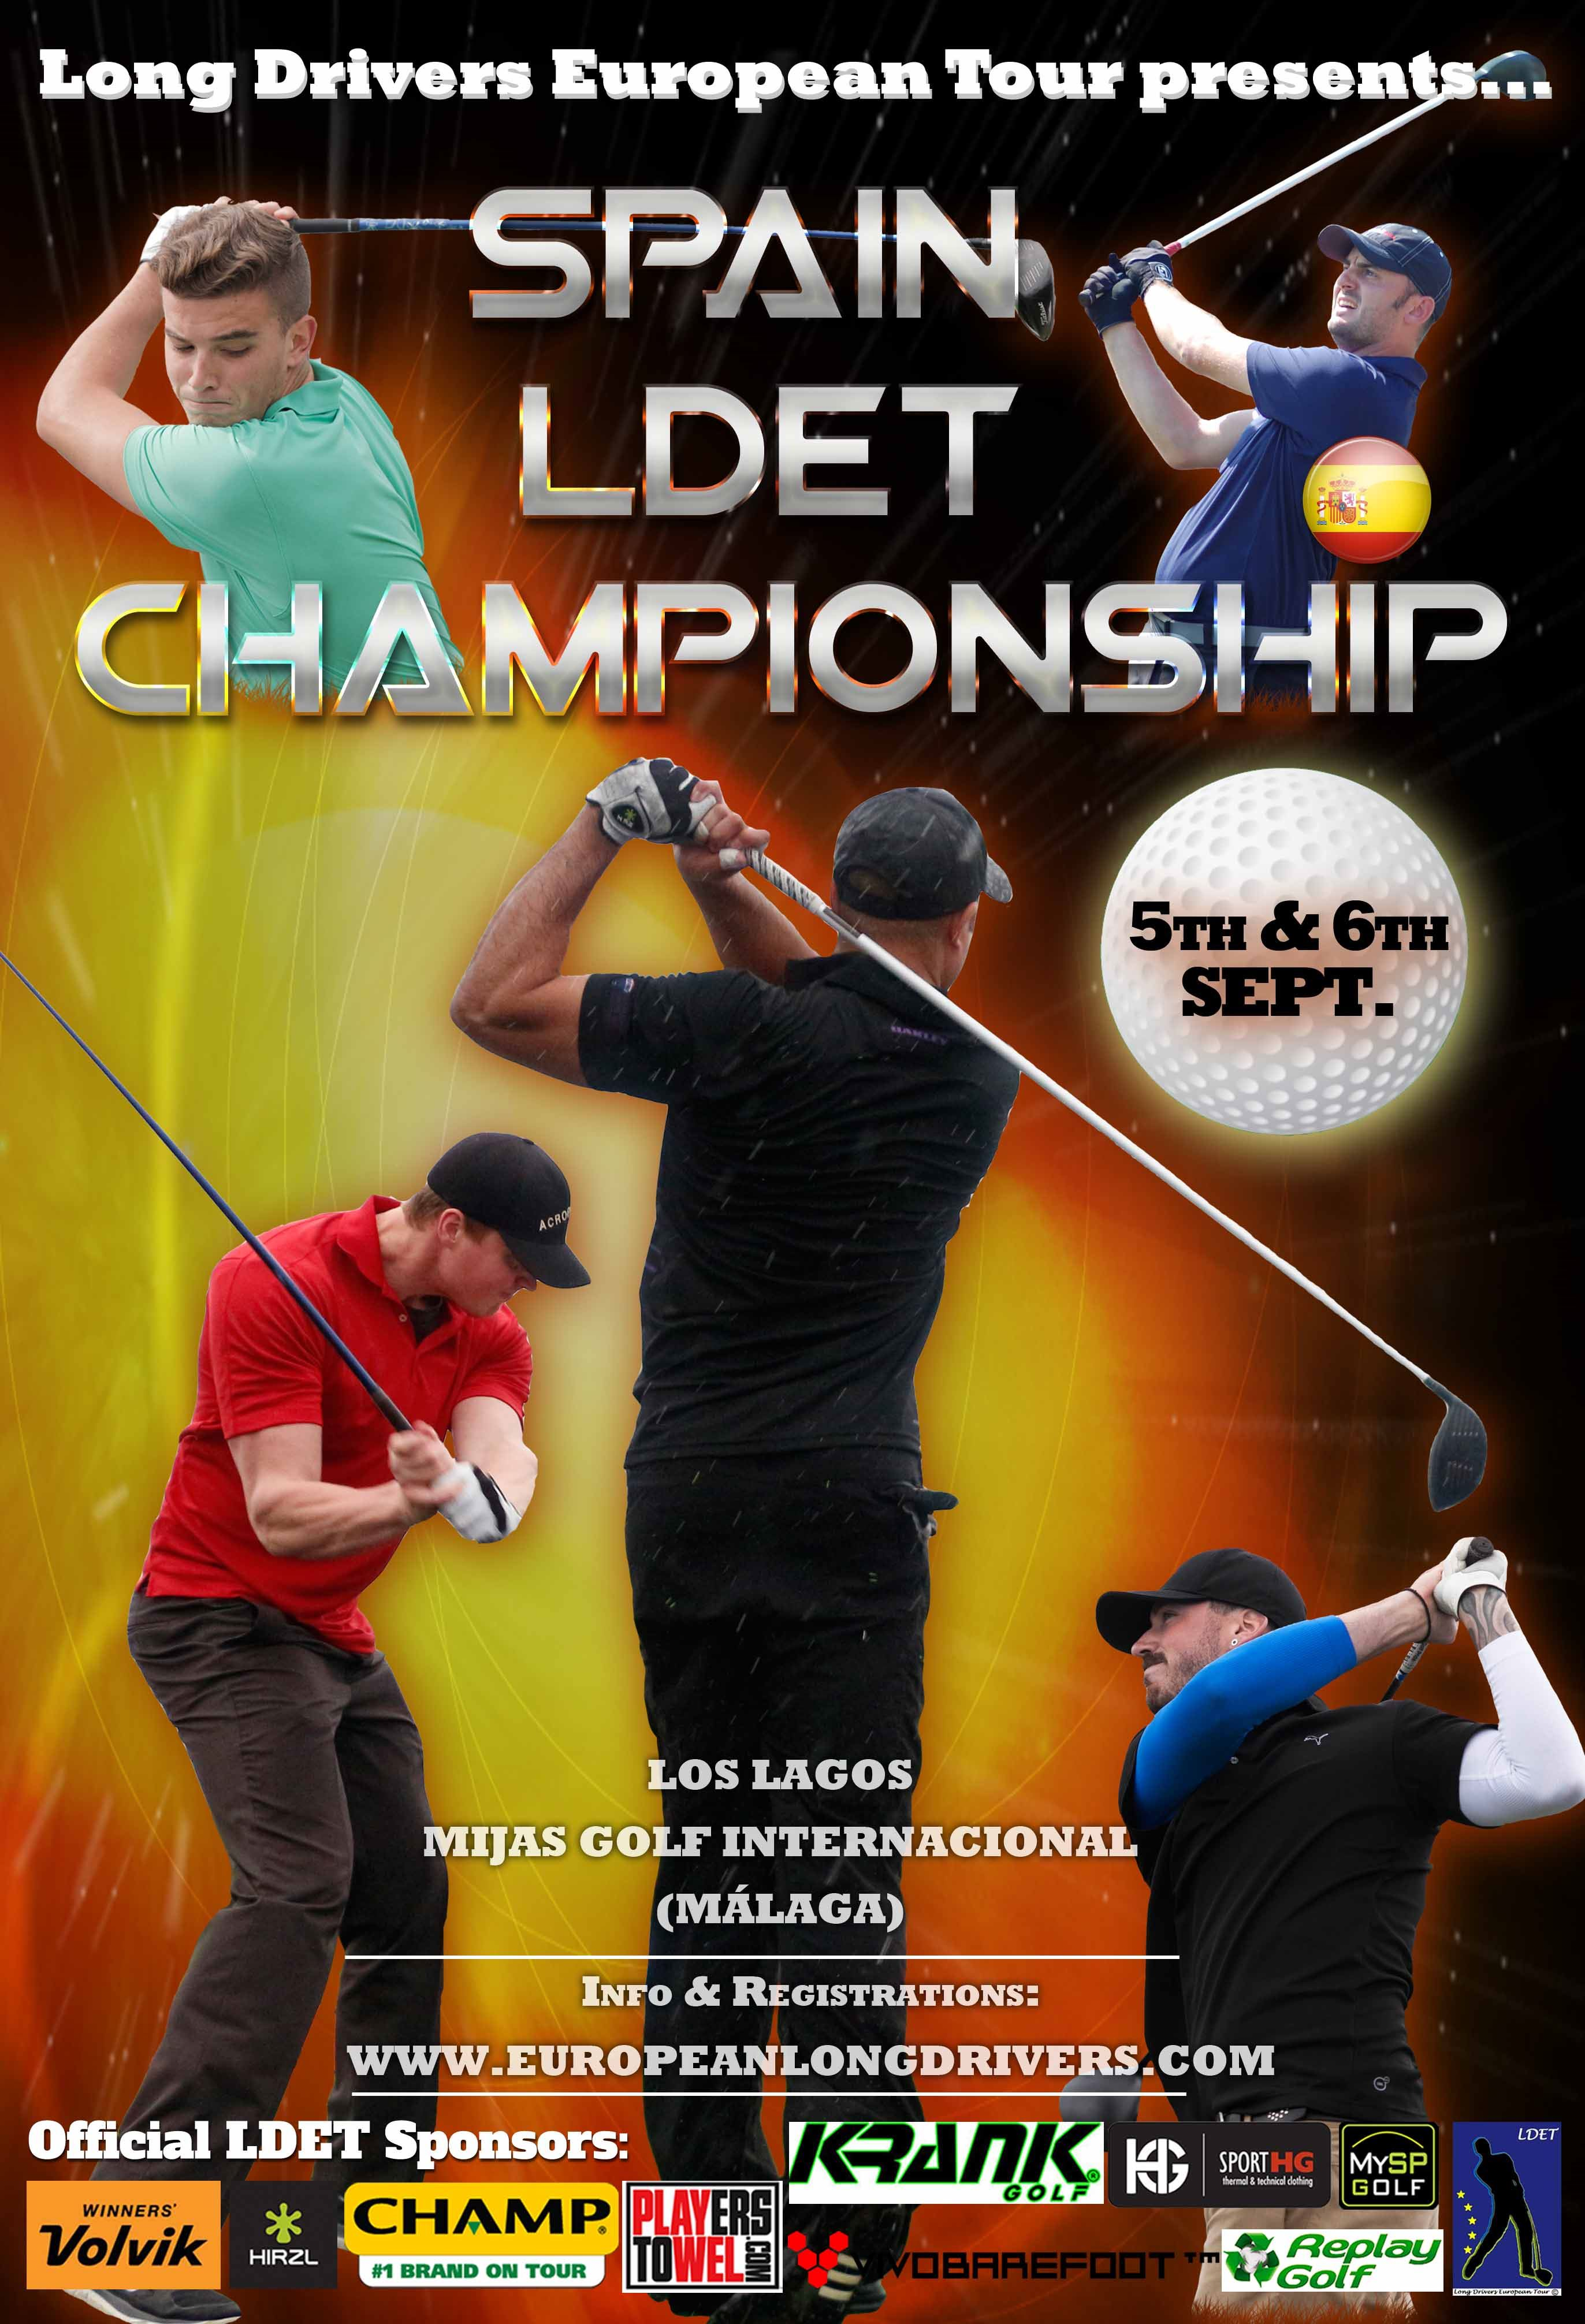 Torneo LONG DRIVERS EUROPEAN TOUR